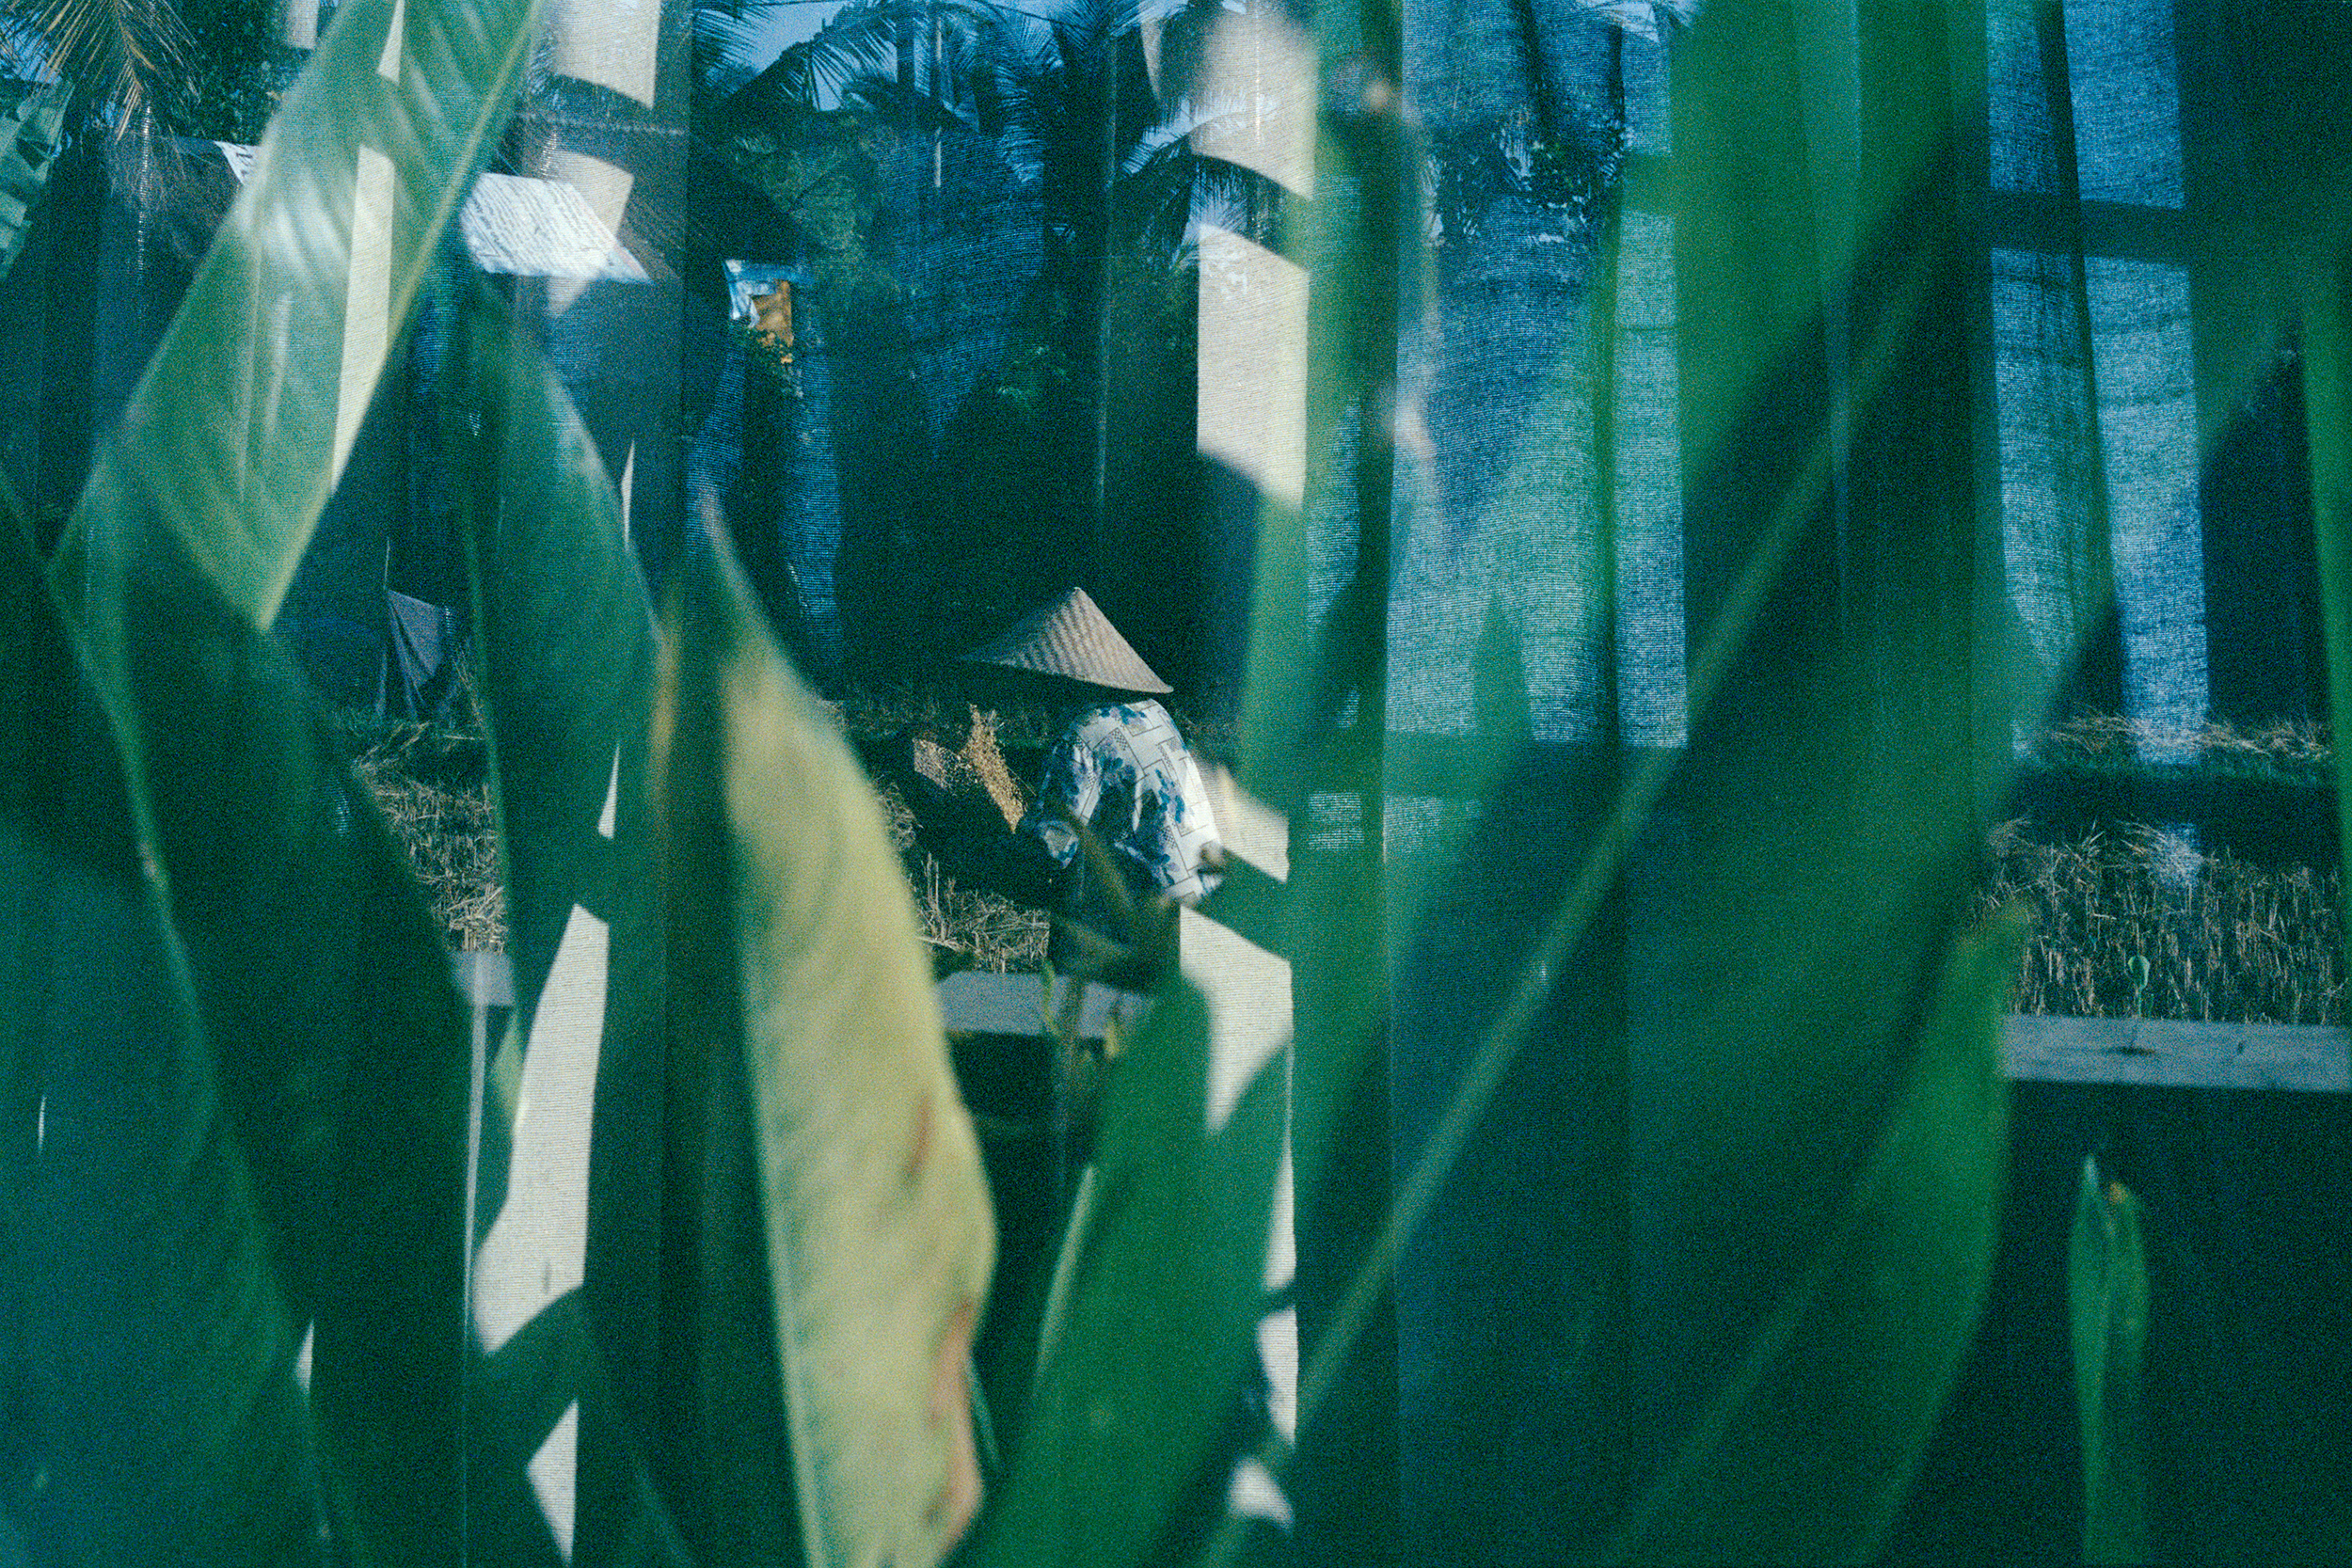 Sifting Through Life, analogue double exposure, Bali 2014